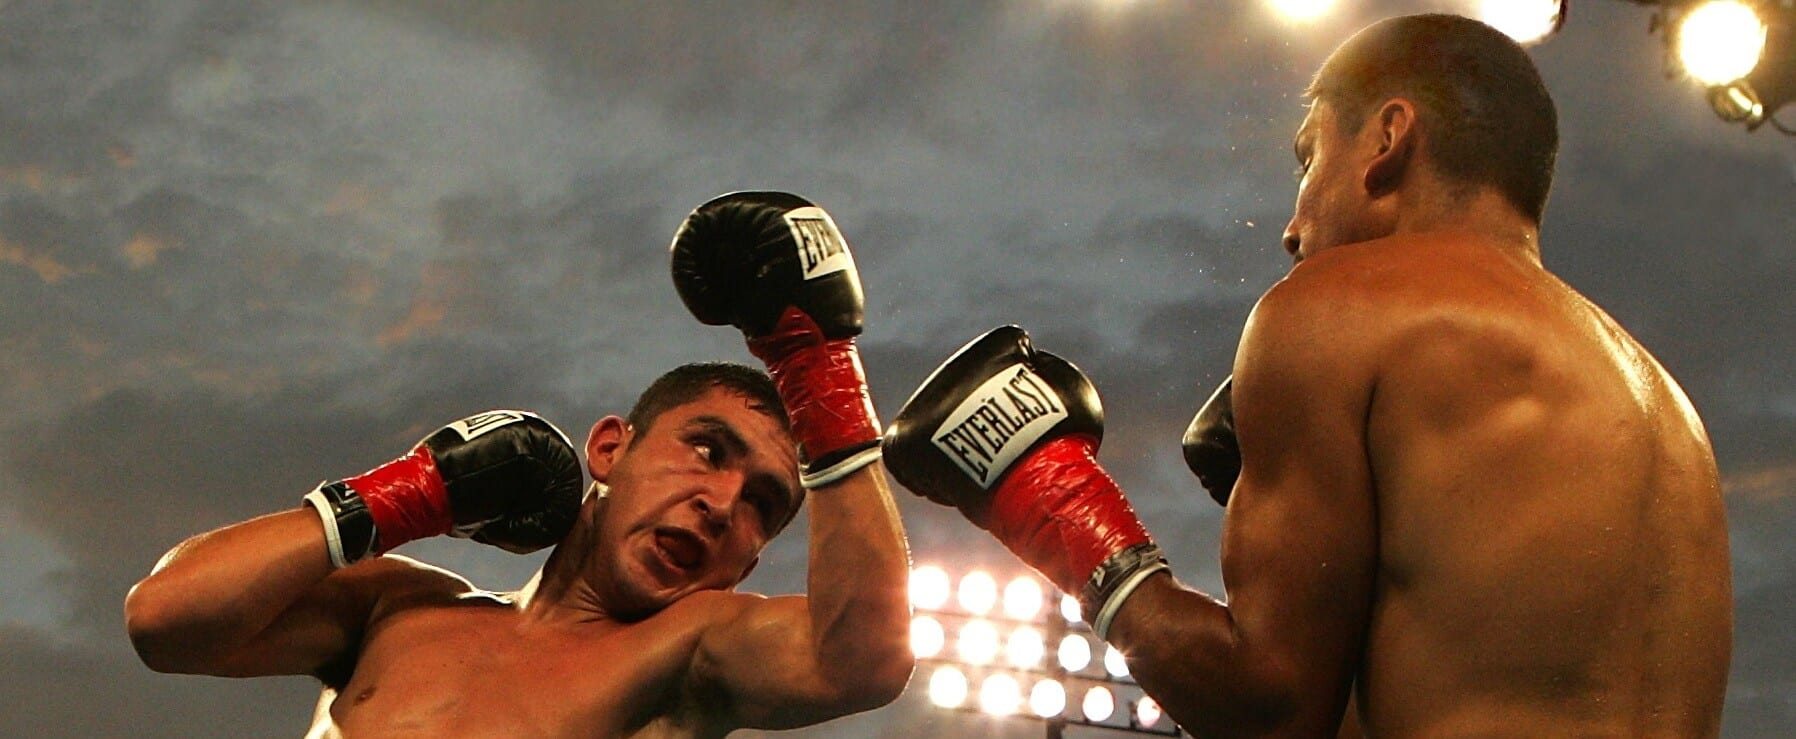 sport-box-muscle-boxer-hook-boxing (1)